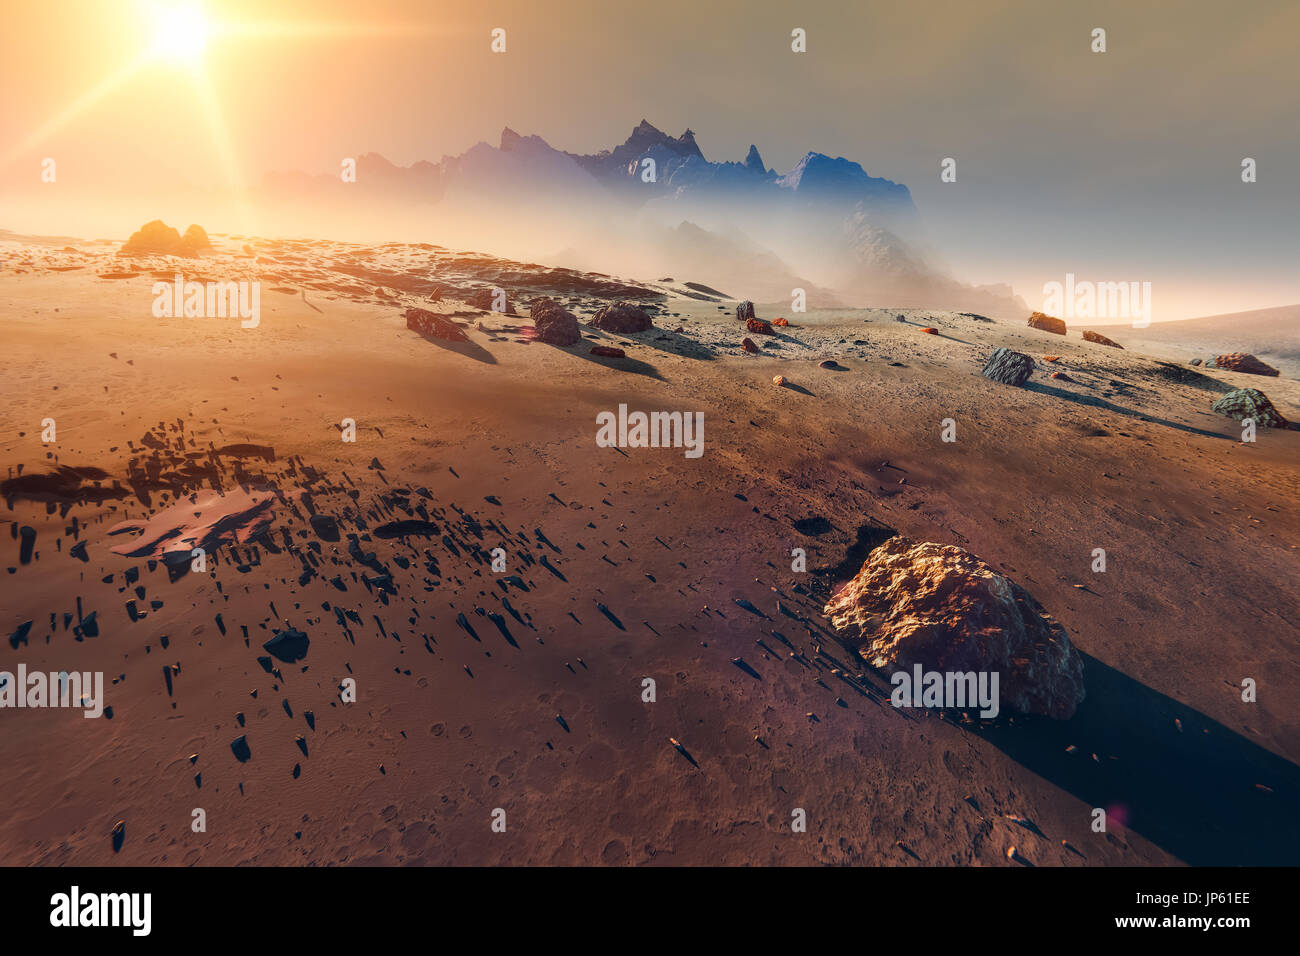 Planet Mars landscape sunset, mountains and scattered meteorite rocks, 3d illustration Stock Photo